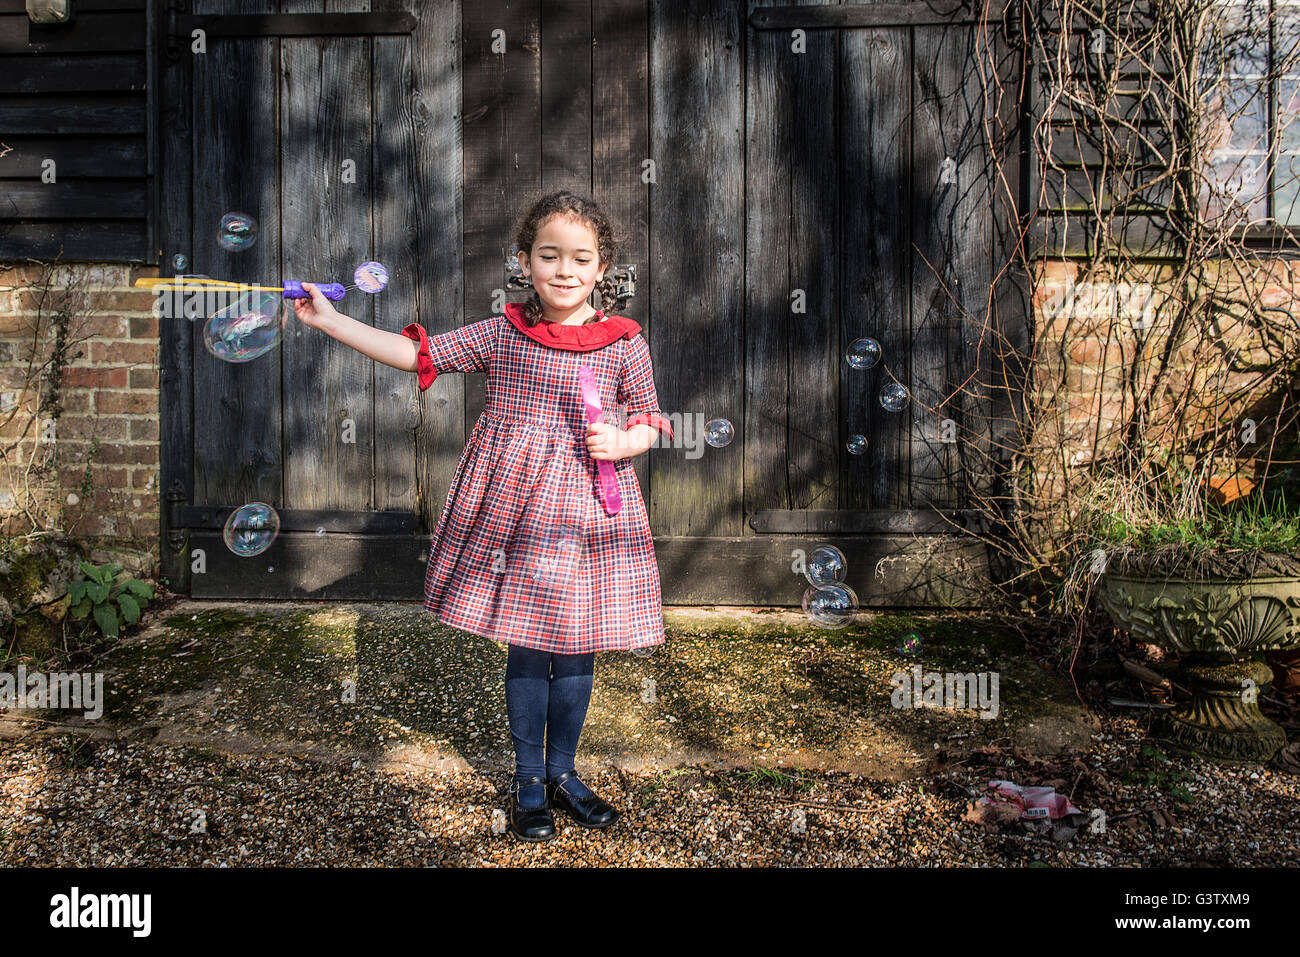 A six year old girl blowing bubbles by a garage door. - Stock Image